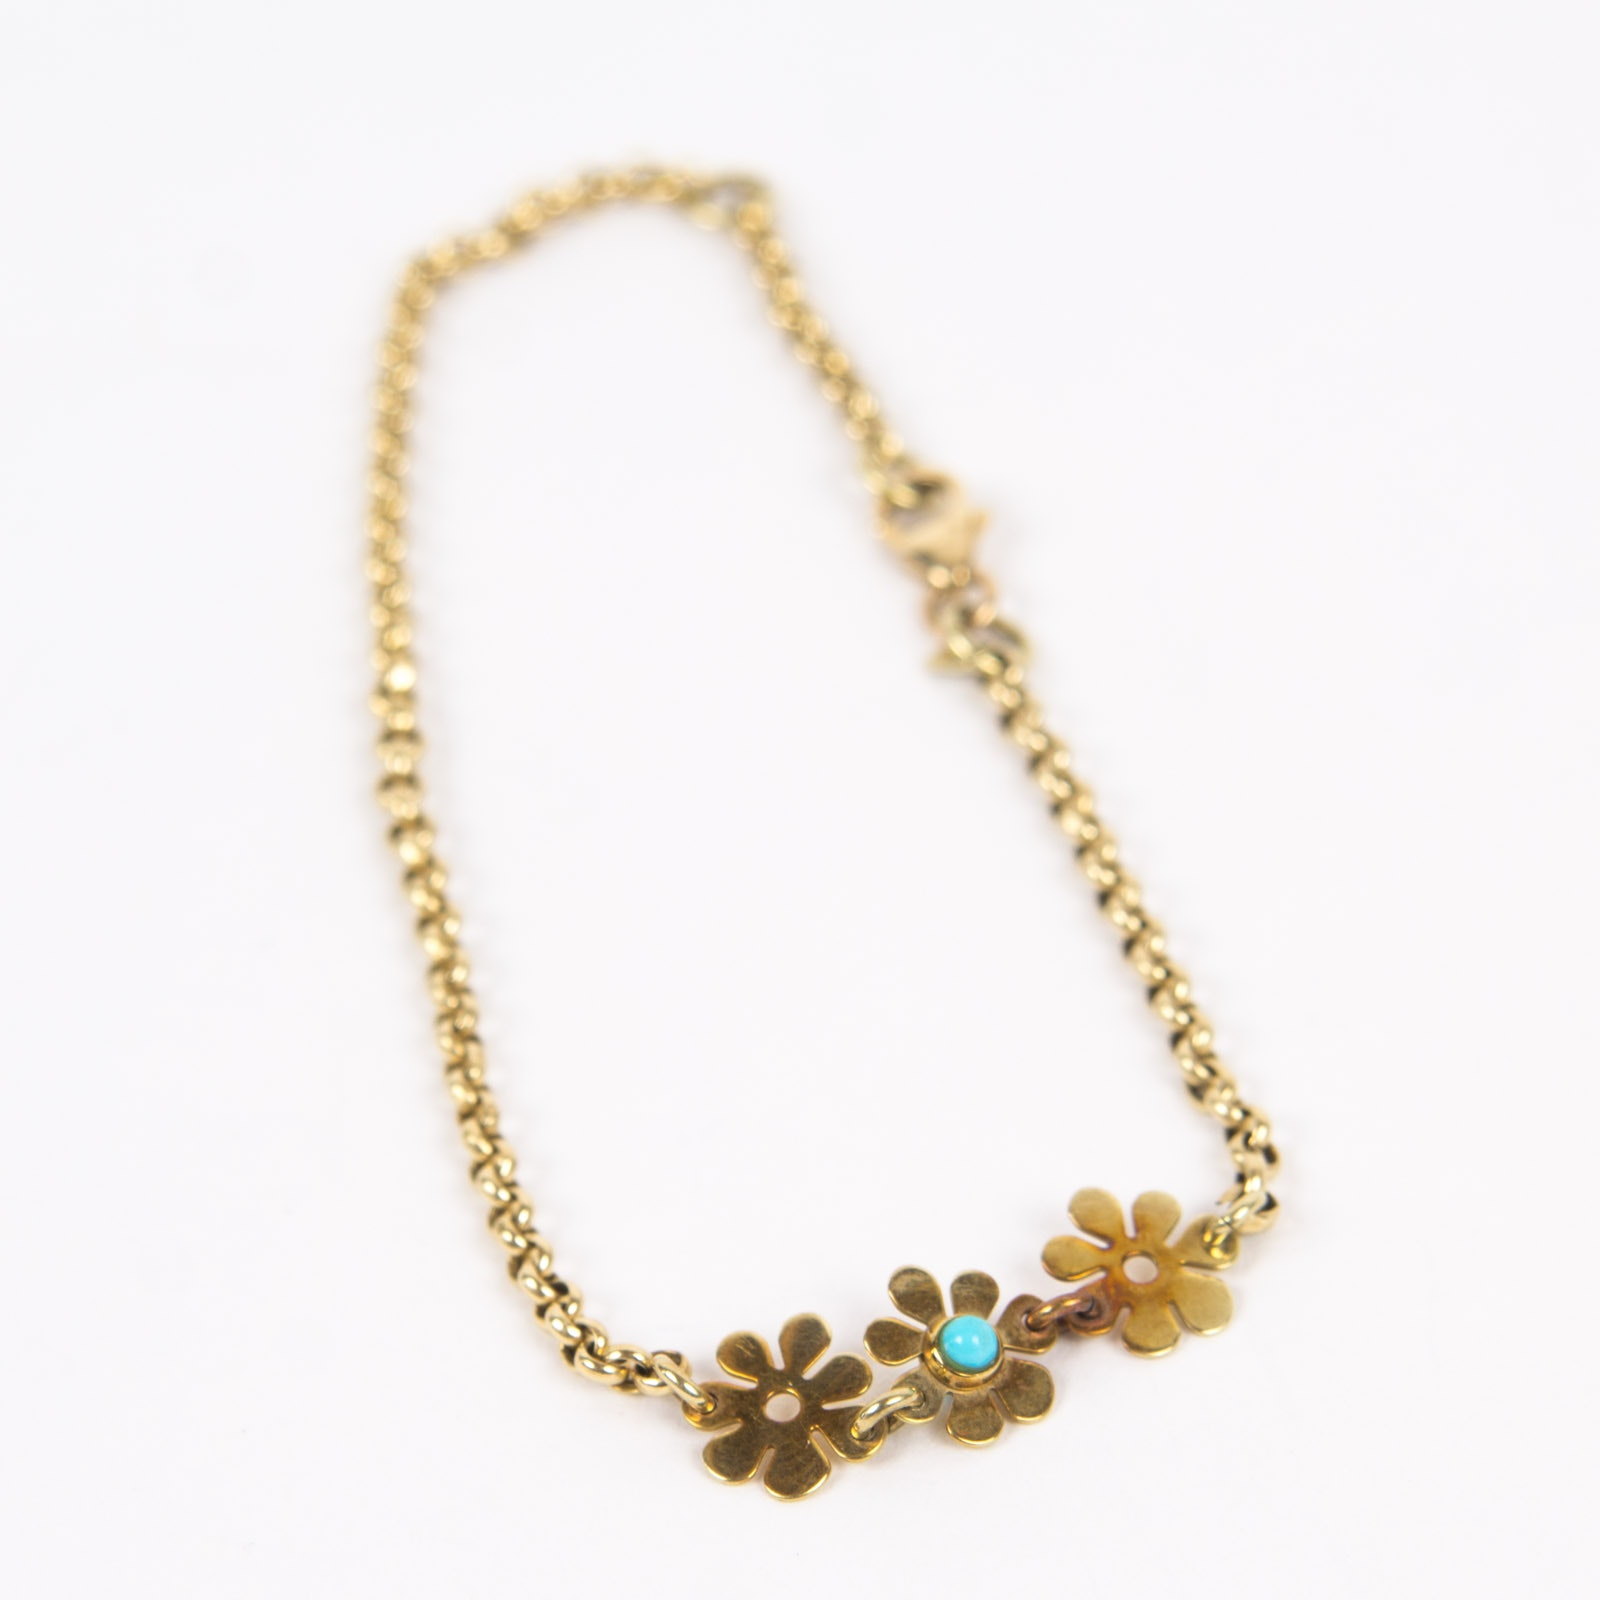 14K Yellow Gold Tennis Bracelet with Turquoise